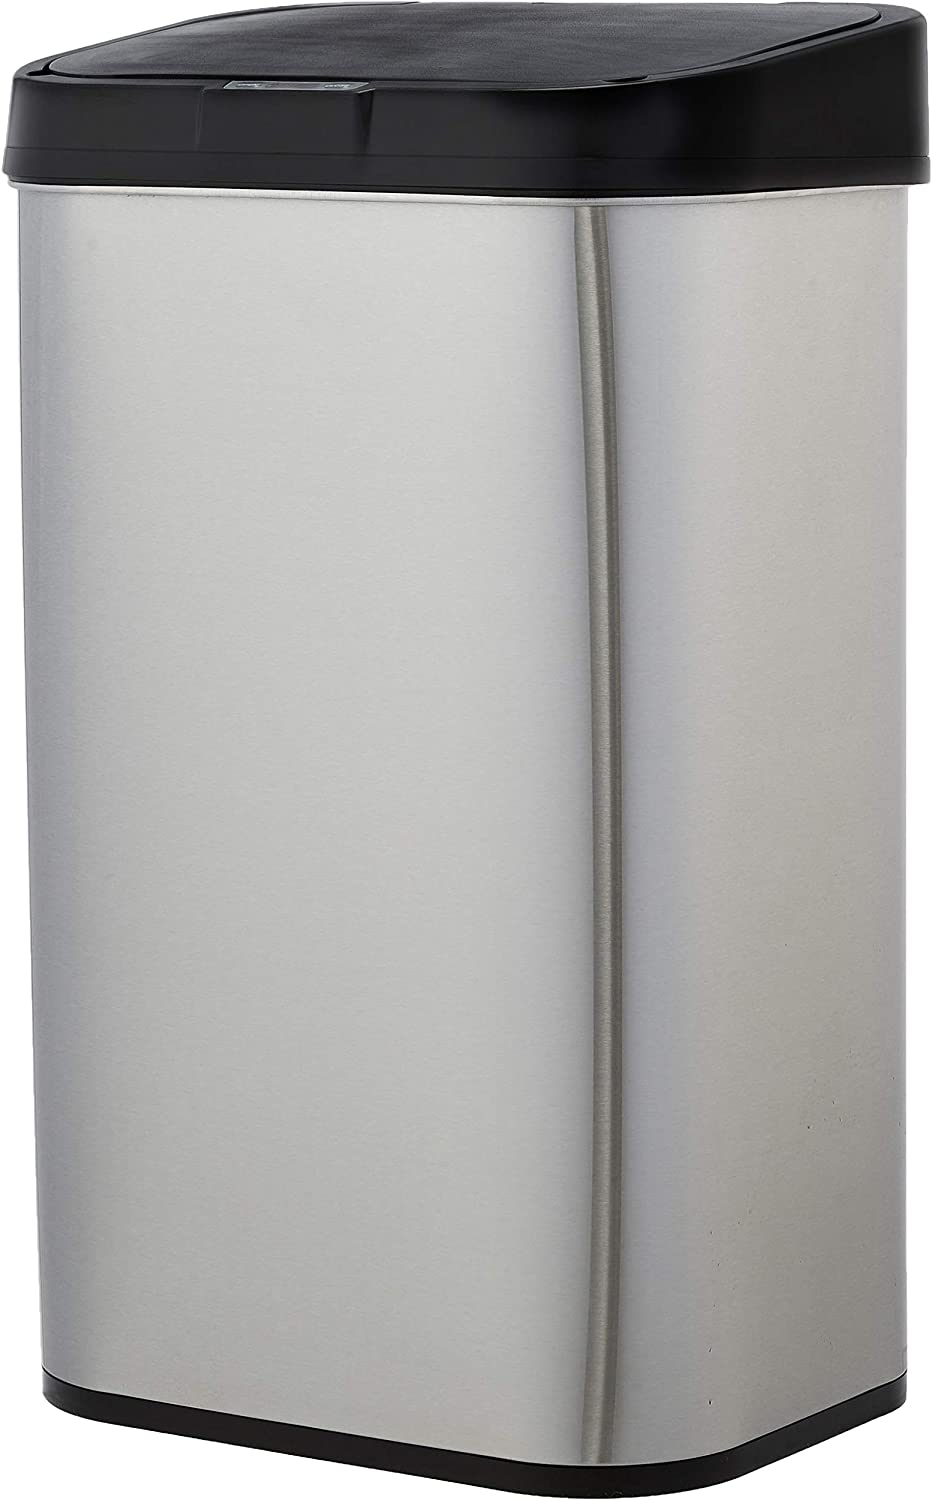 AmazonBasics Automatic Stainless Steel Trash Can - Rectangular, 60-Liter